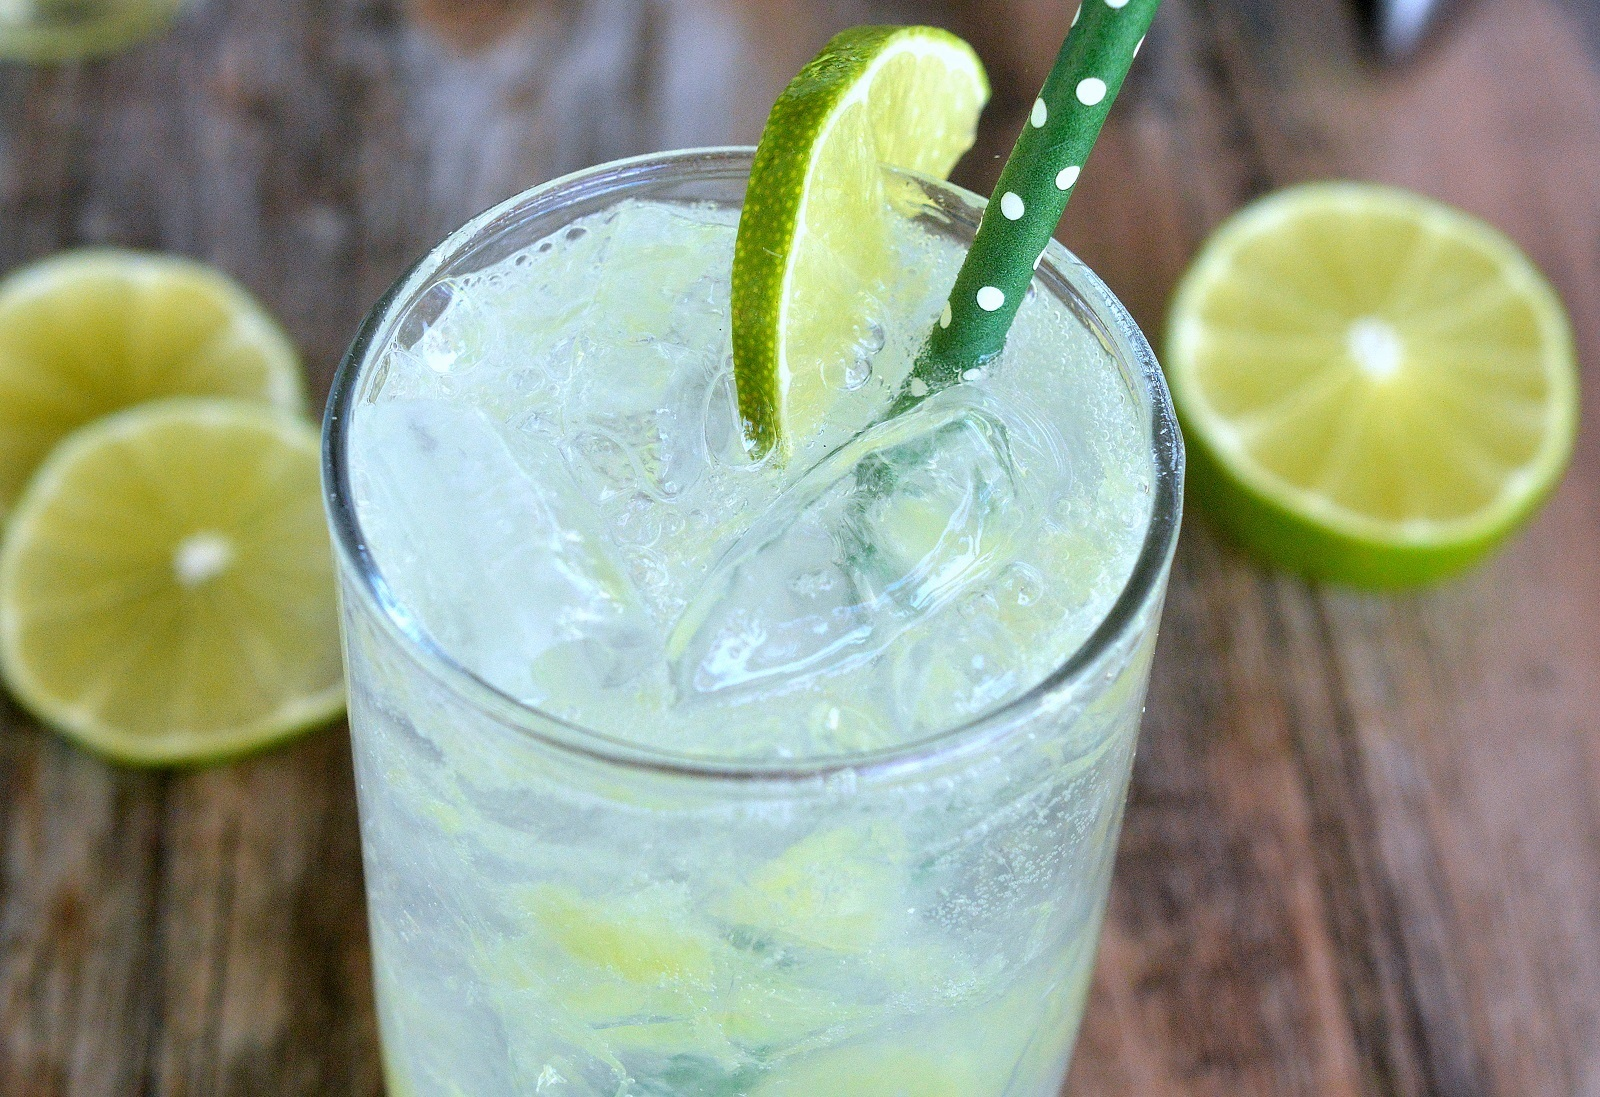 Homemade Lime Soda - Crisp & refreshing...Just minutes to make and you KNOW what's in it! PLUS, control the level of sweetness...Make it low carb or full sweet